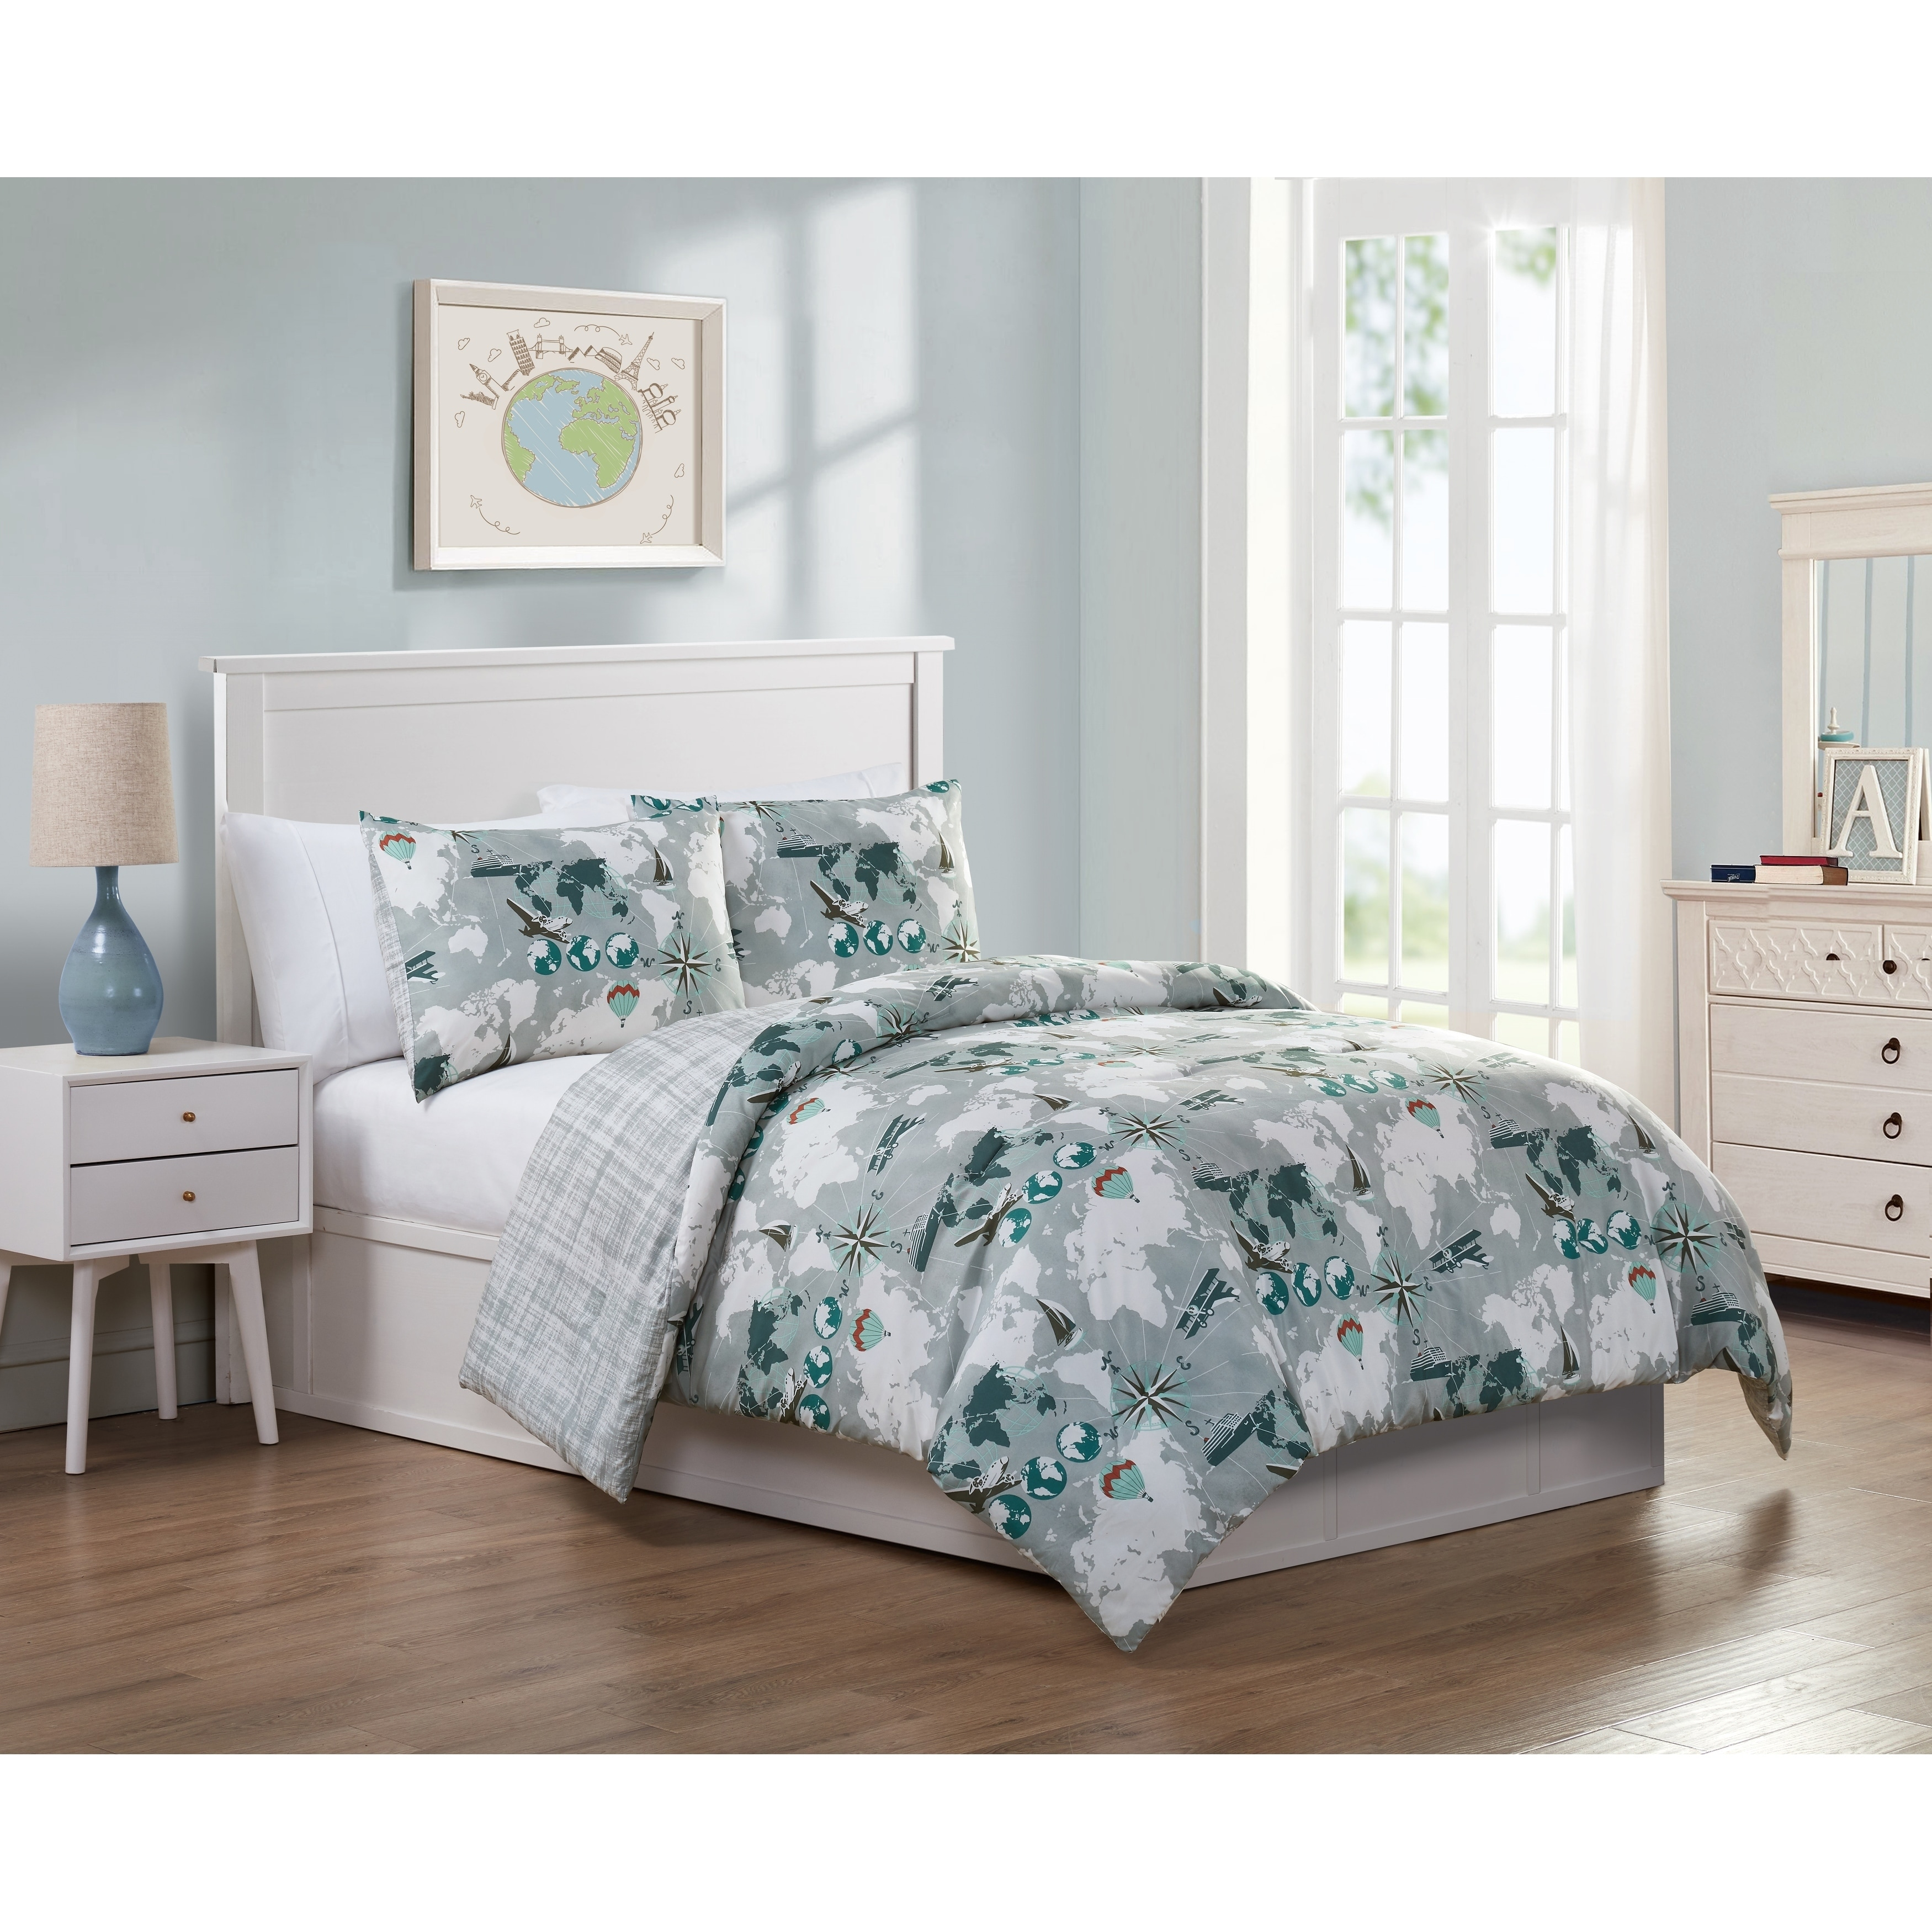 VCNY Home World Traveler Comforter Set | eBay